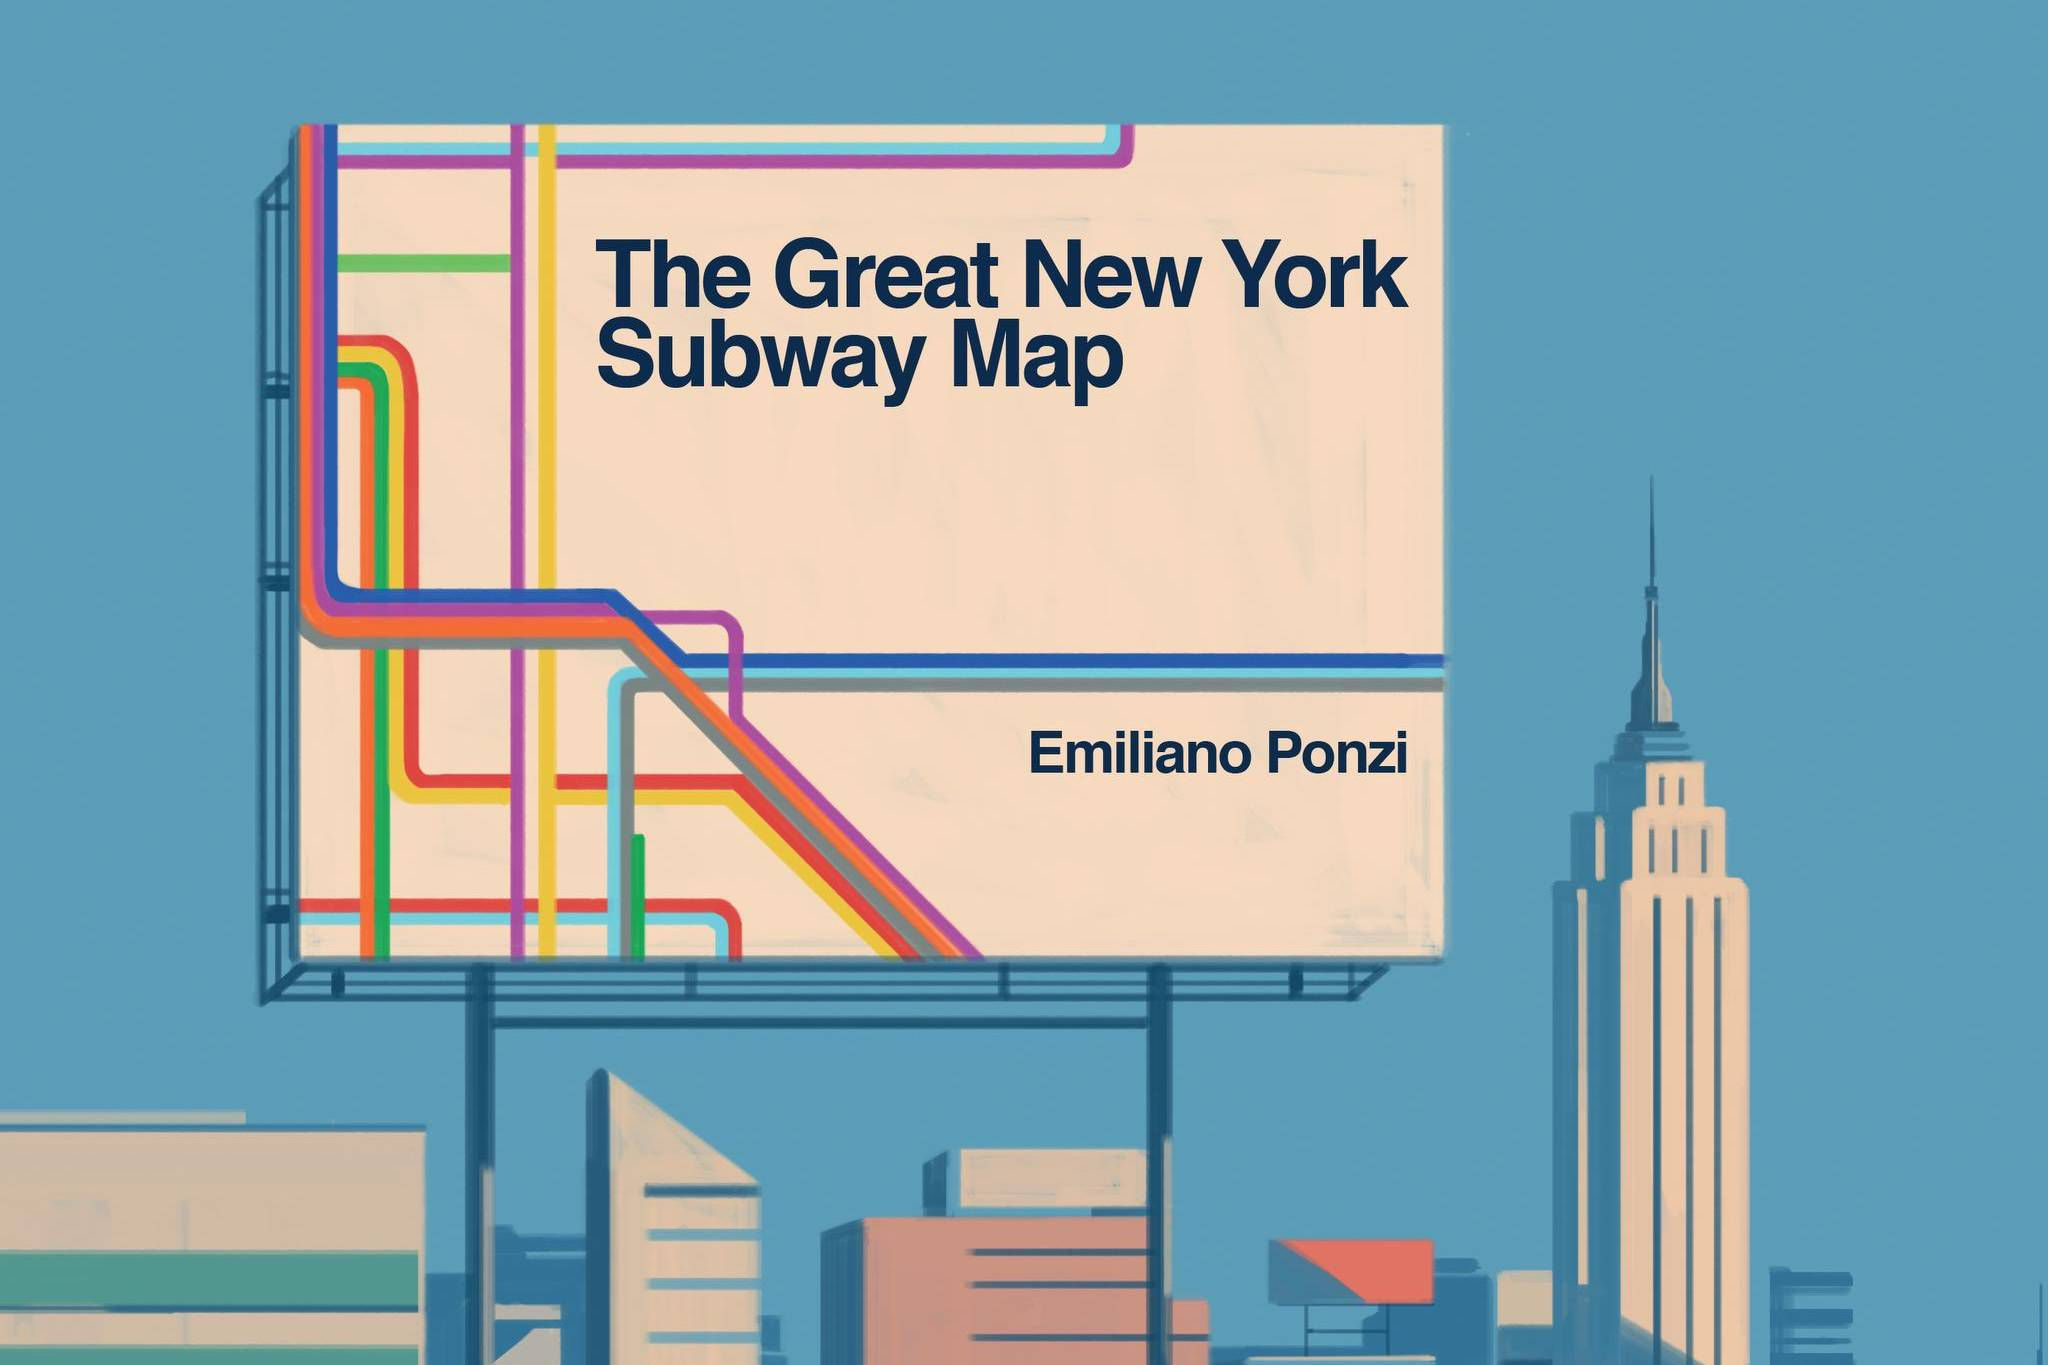 Nyc Subway Map Author Emiliano Ponzi.To Truly Understand Design We Need To Stop Look And Learn The